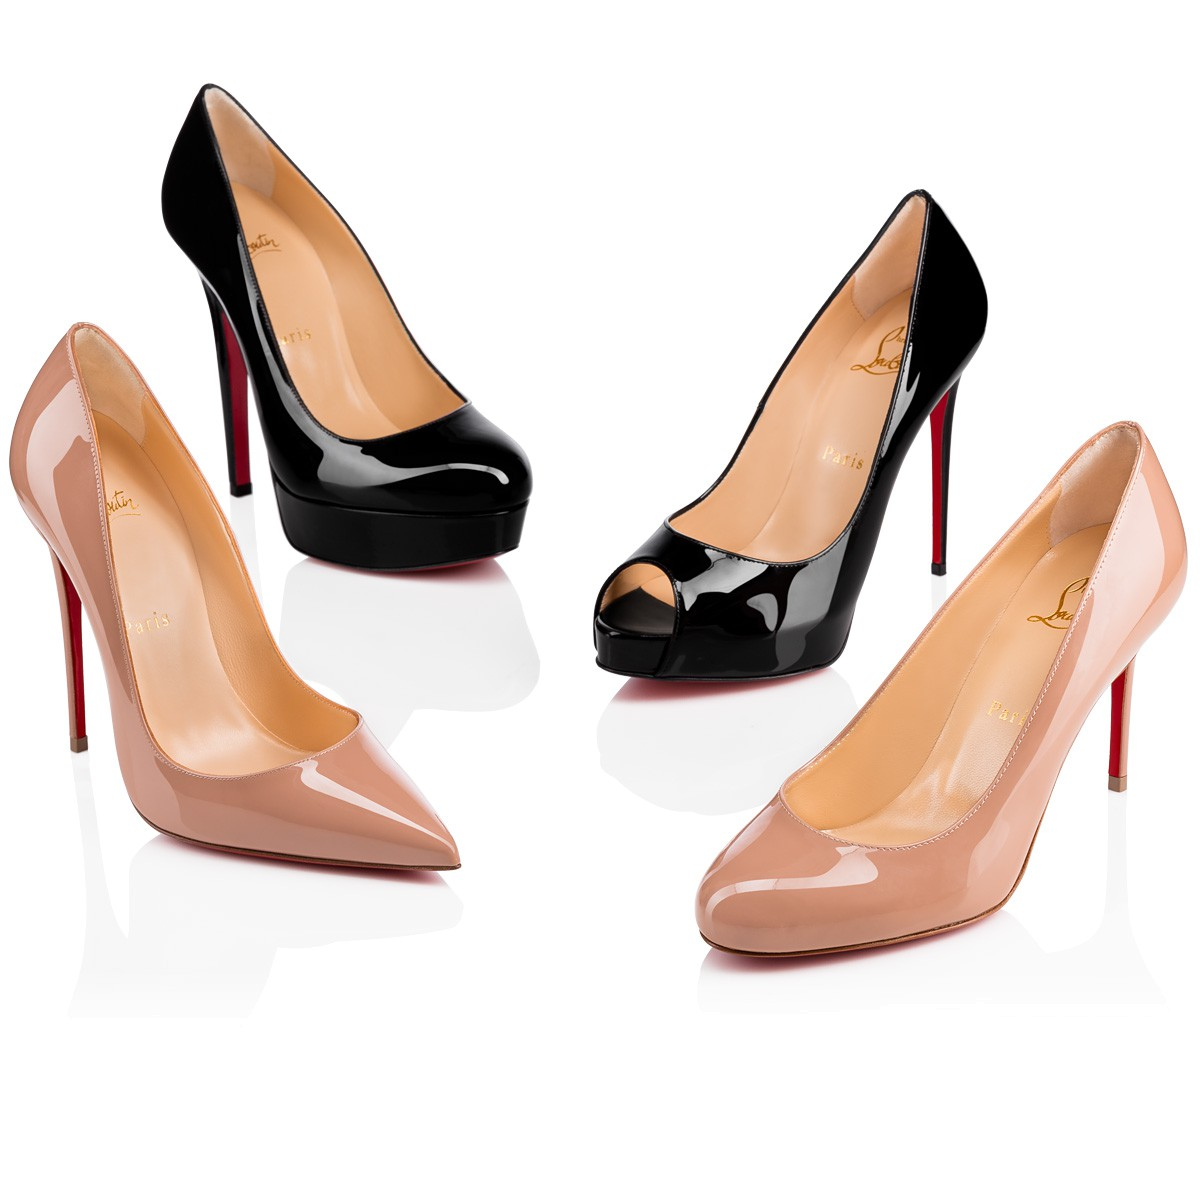 Shoes - Private Number - Christian Louboutin